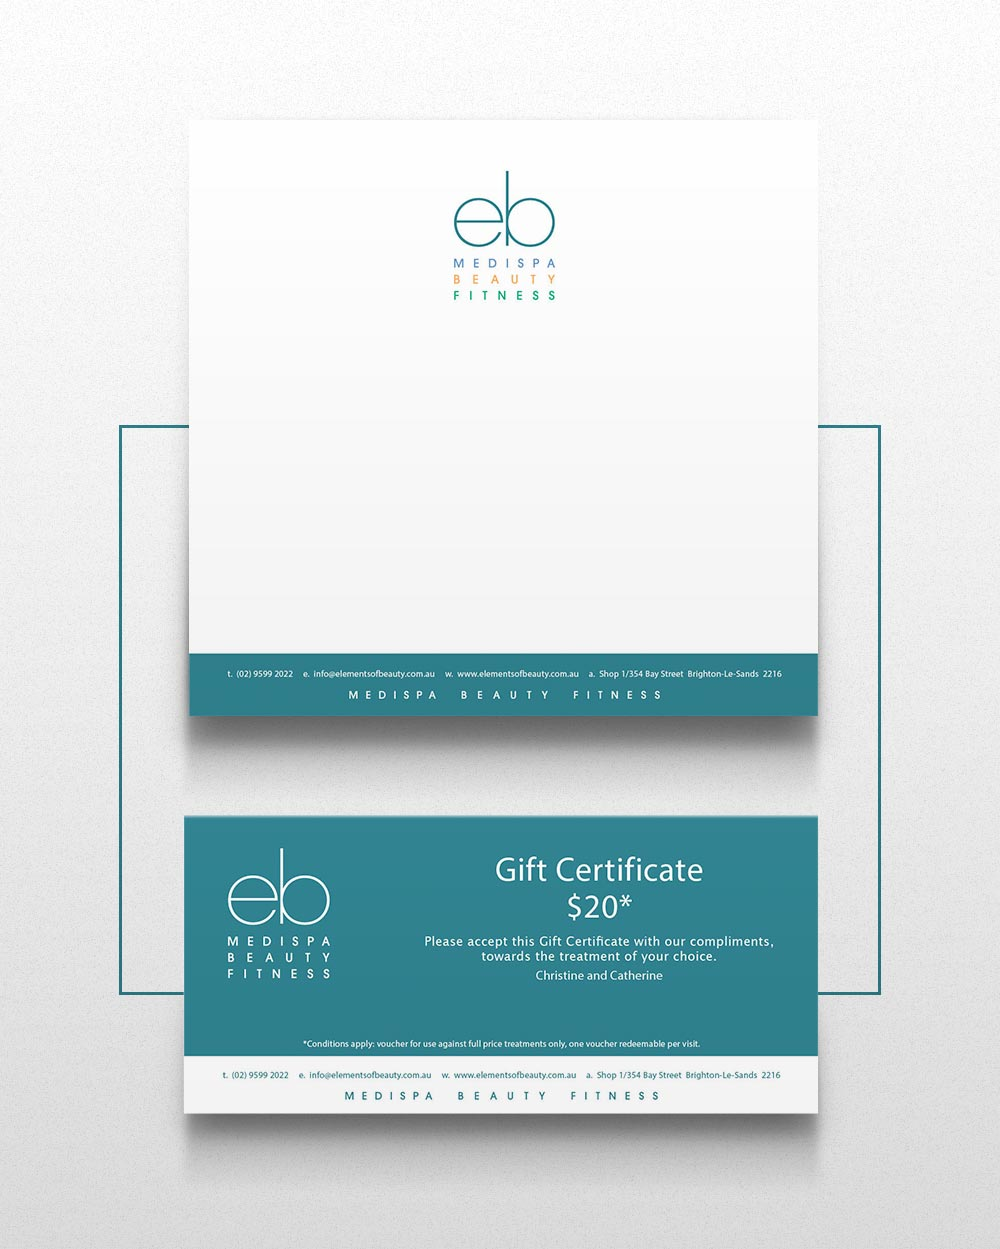 DesignIdentity_ElementsOfBeauty_Stationery_graphic_design_2